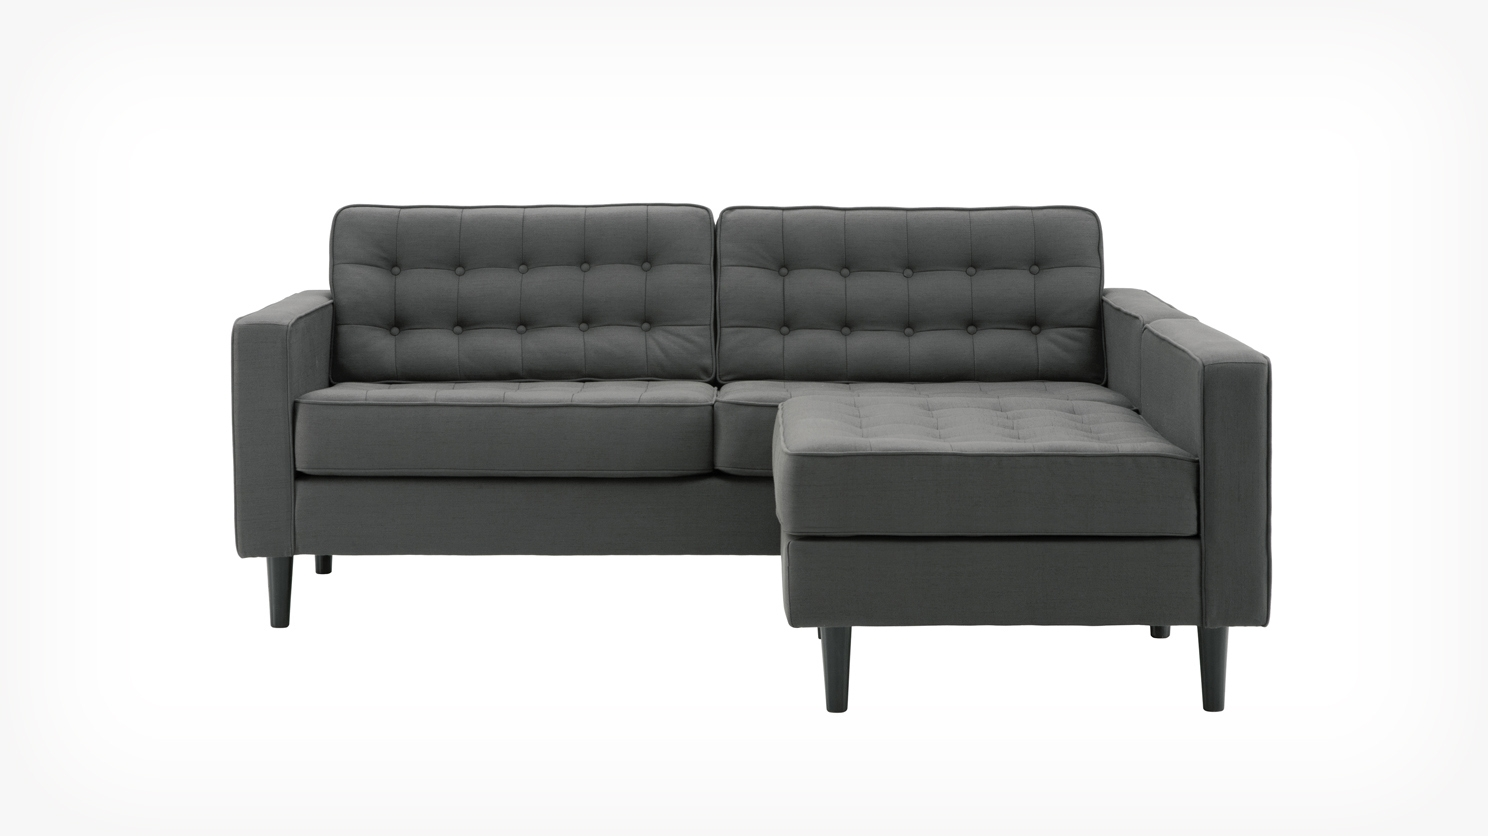 Genial 2 Piece Chaise Sectional Hausdesign Lorimer 2 Piece Review Intended For Apartment Sectional Sofa With Chaise (#6 of 12)